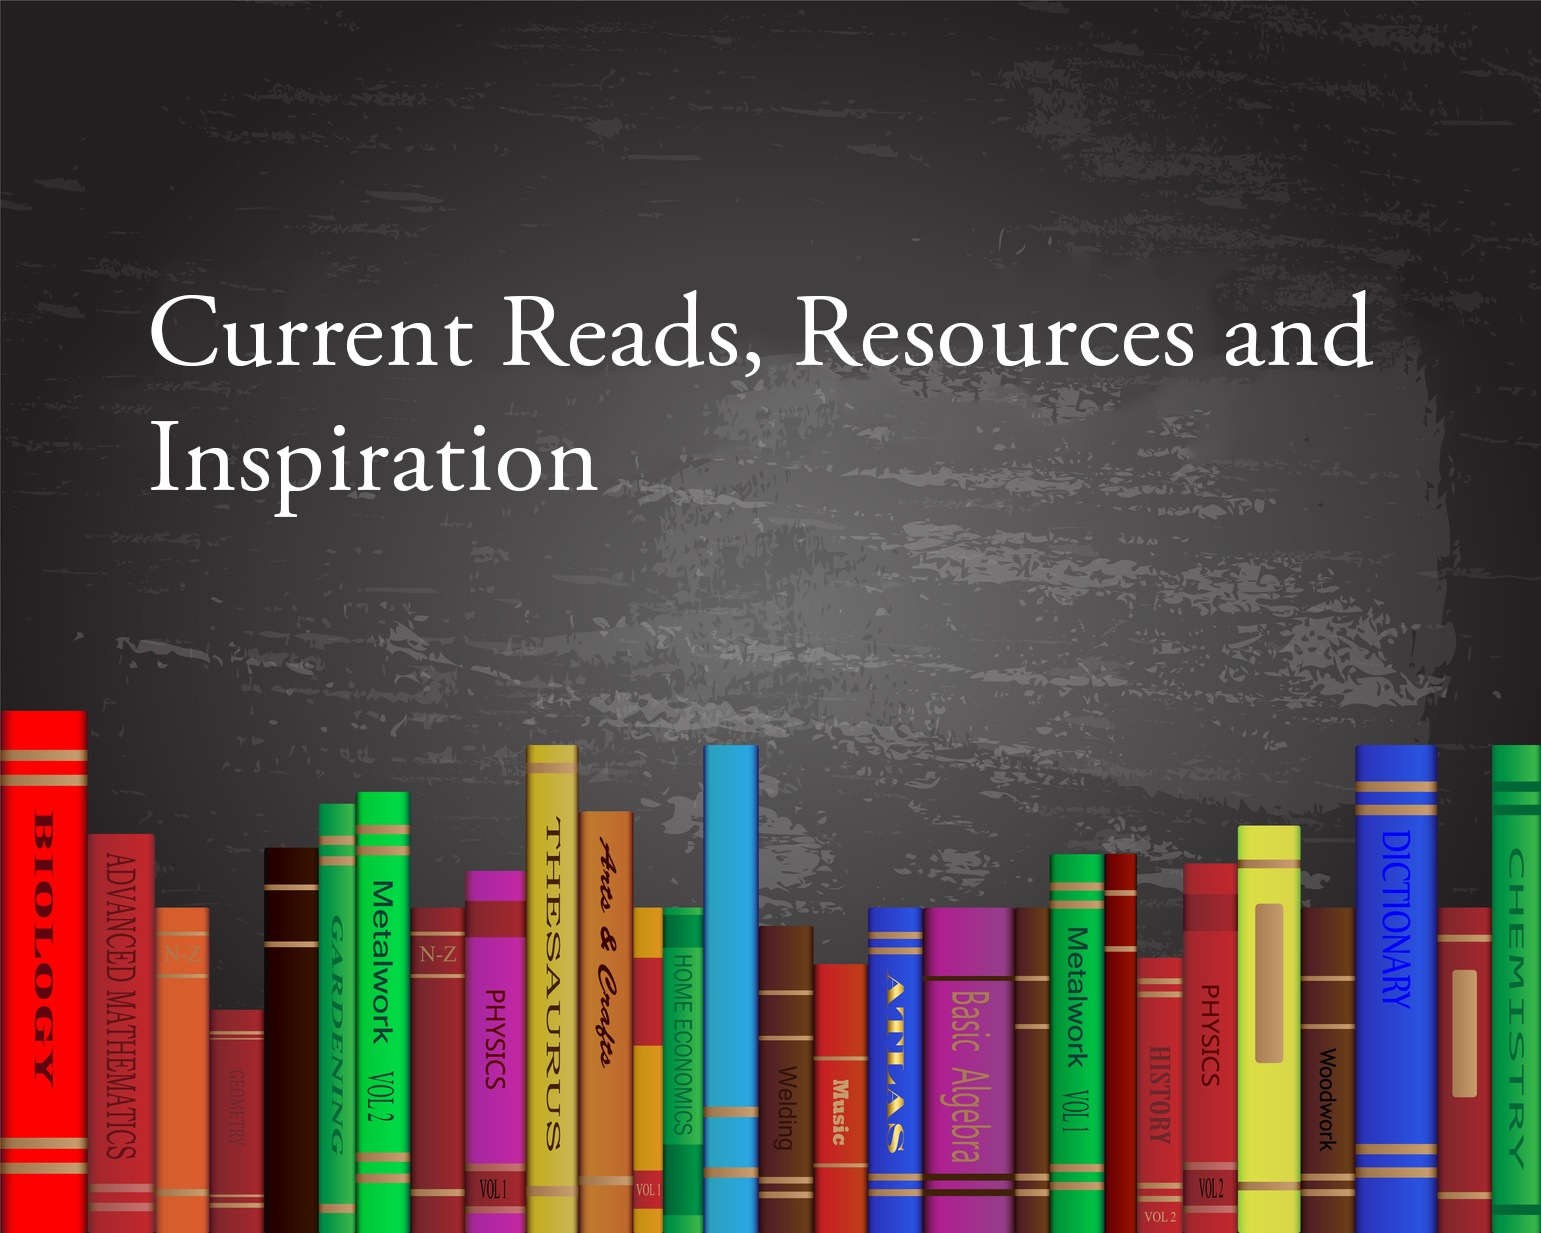 Current Reads, Resources and Inspiration